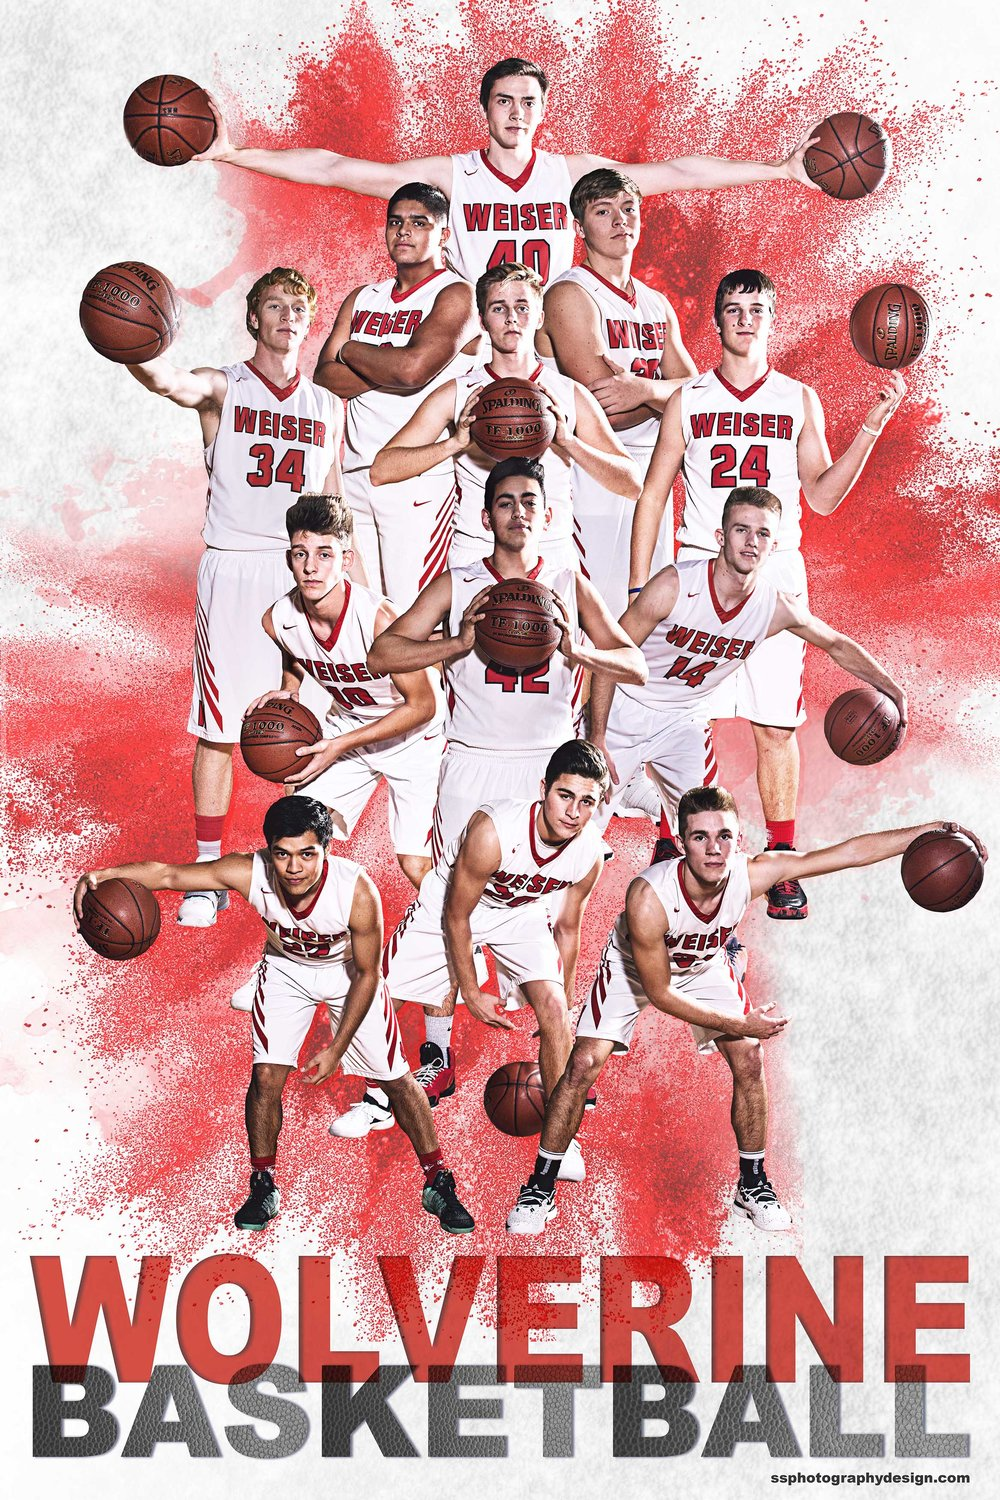 WHS Boys Basketball 2017-18 team photography, lighting, and composite.